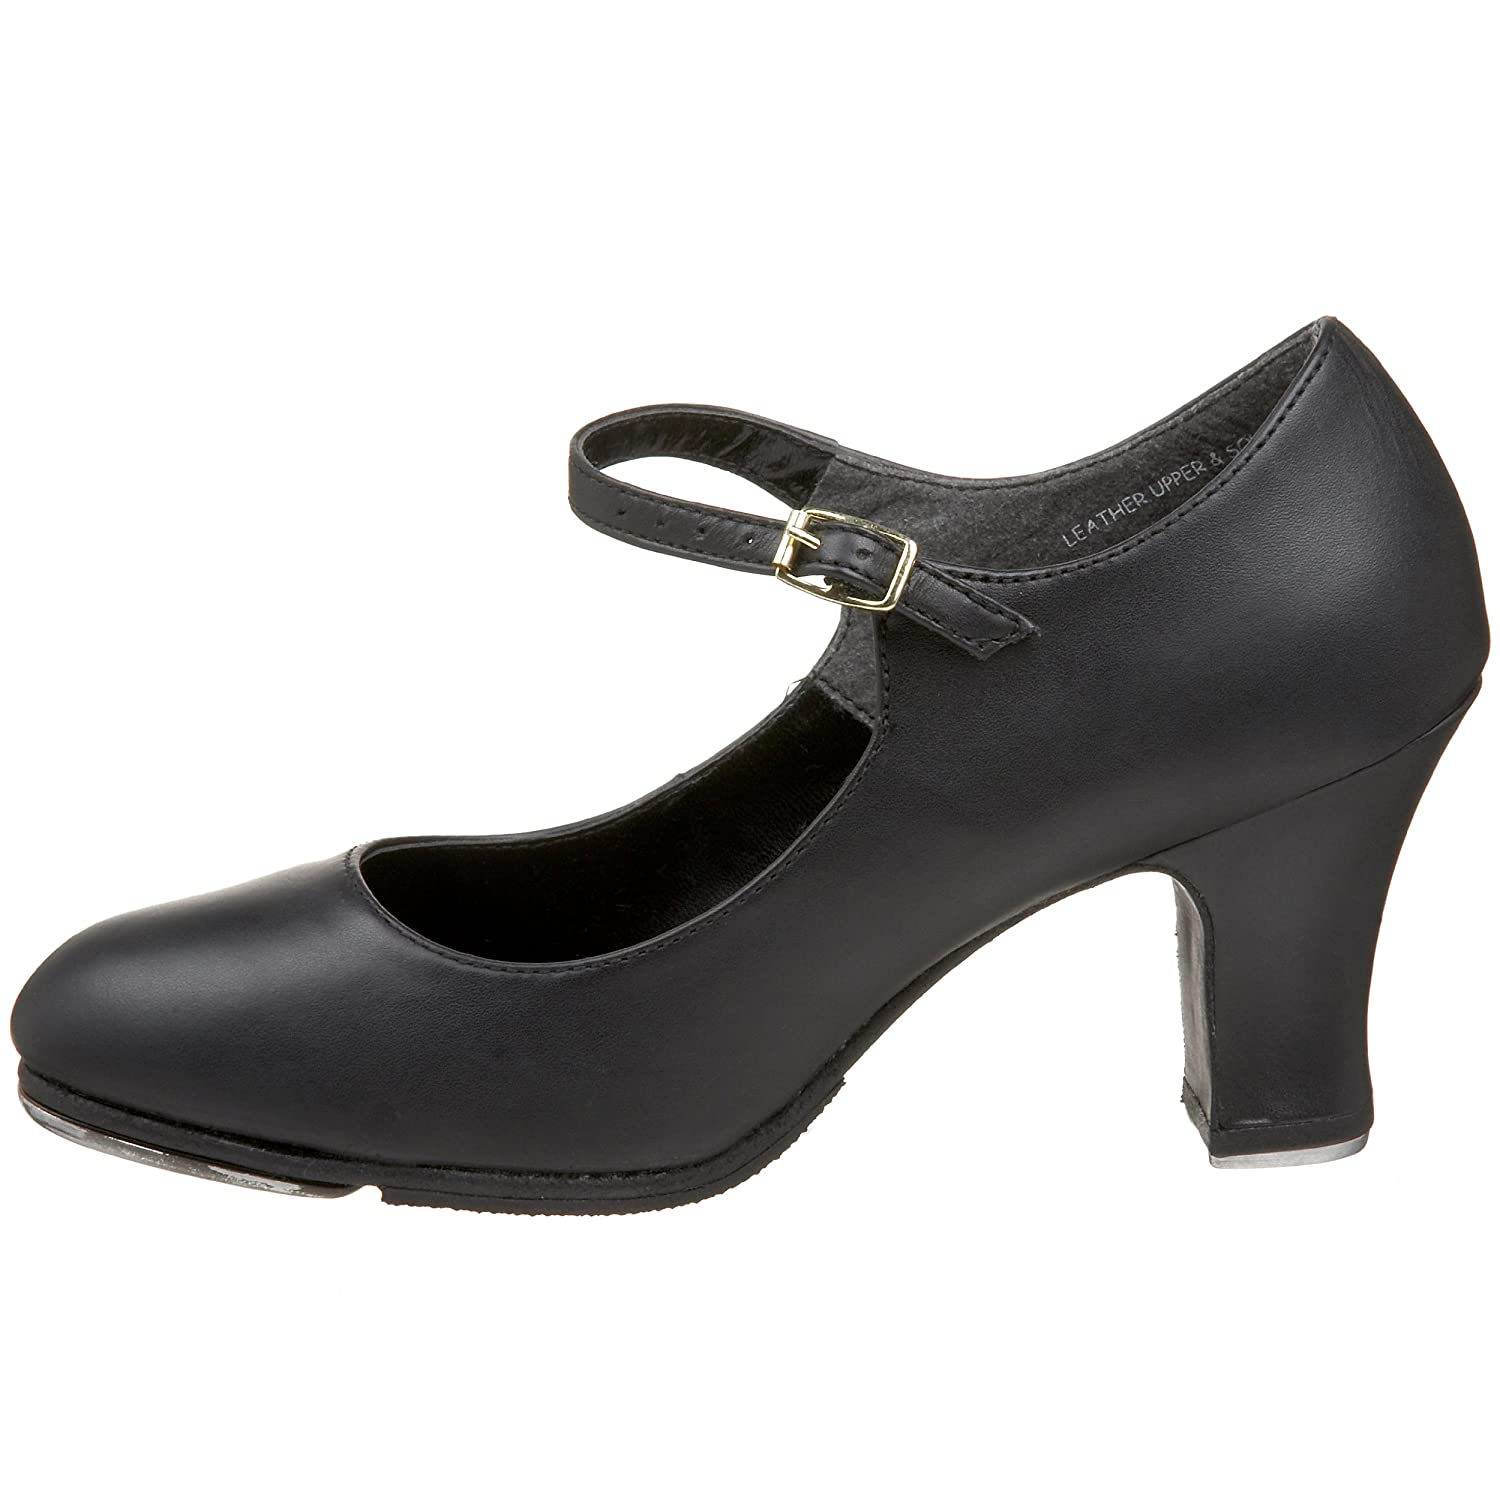 Capezio Women's 657 Manhattan Xtreme Tap Shoe B000B7EHV0 8.5 M US|Black